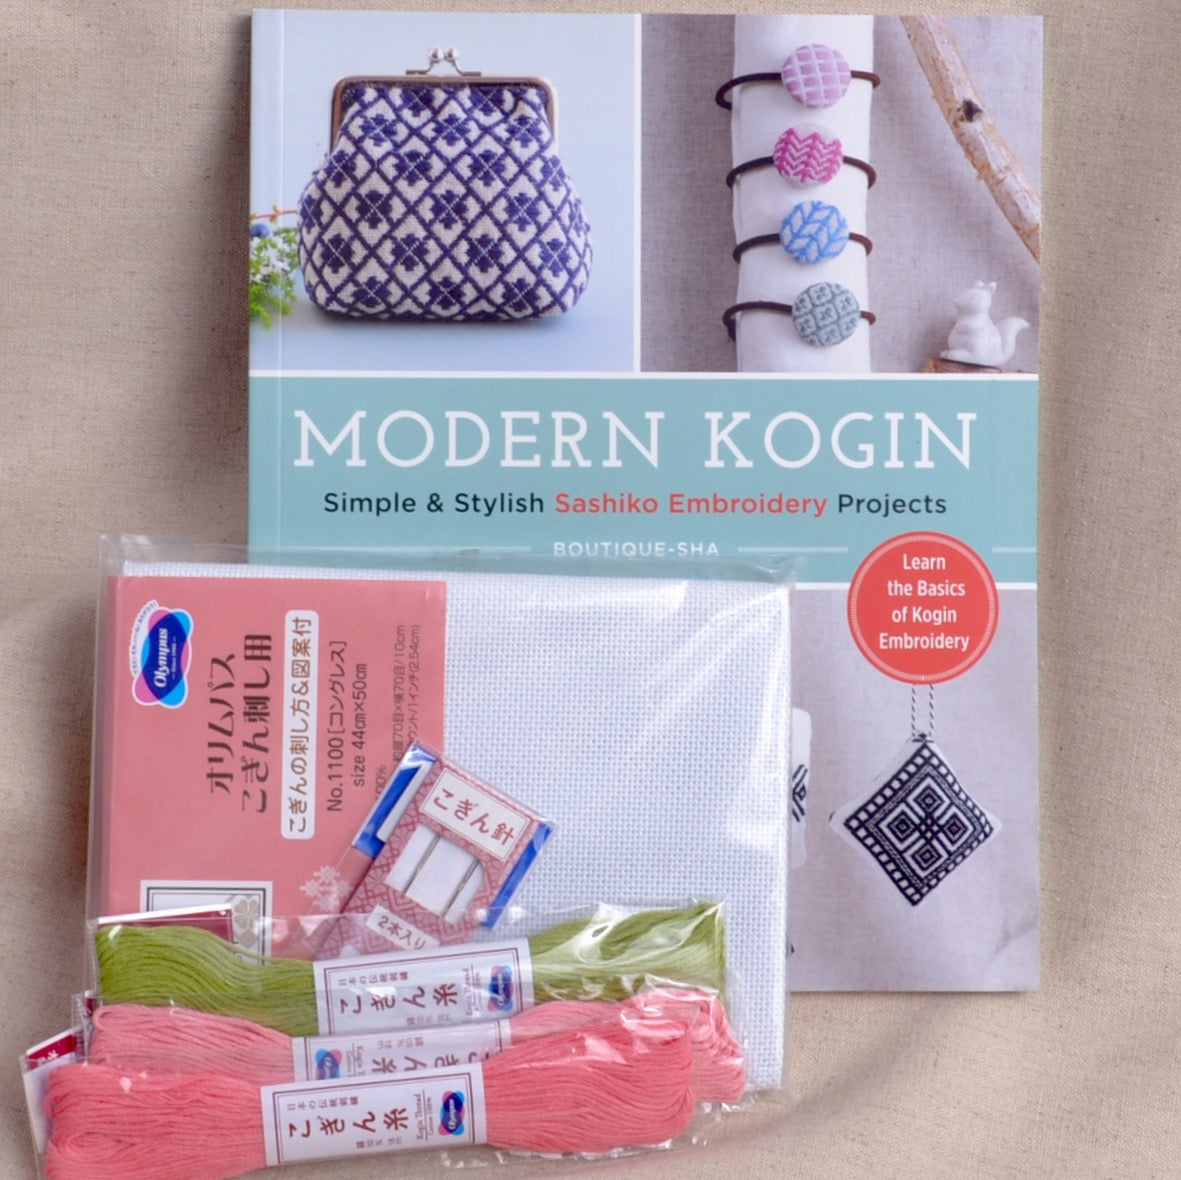 Kogin Kit with Modern Kogin book